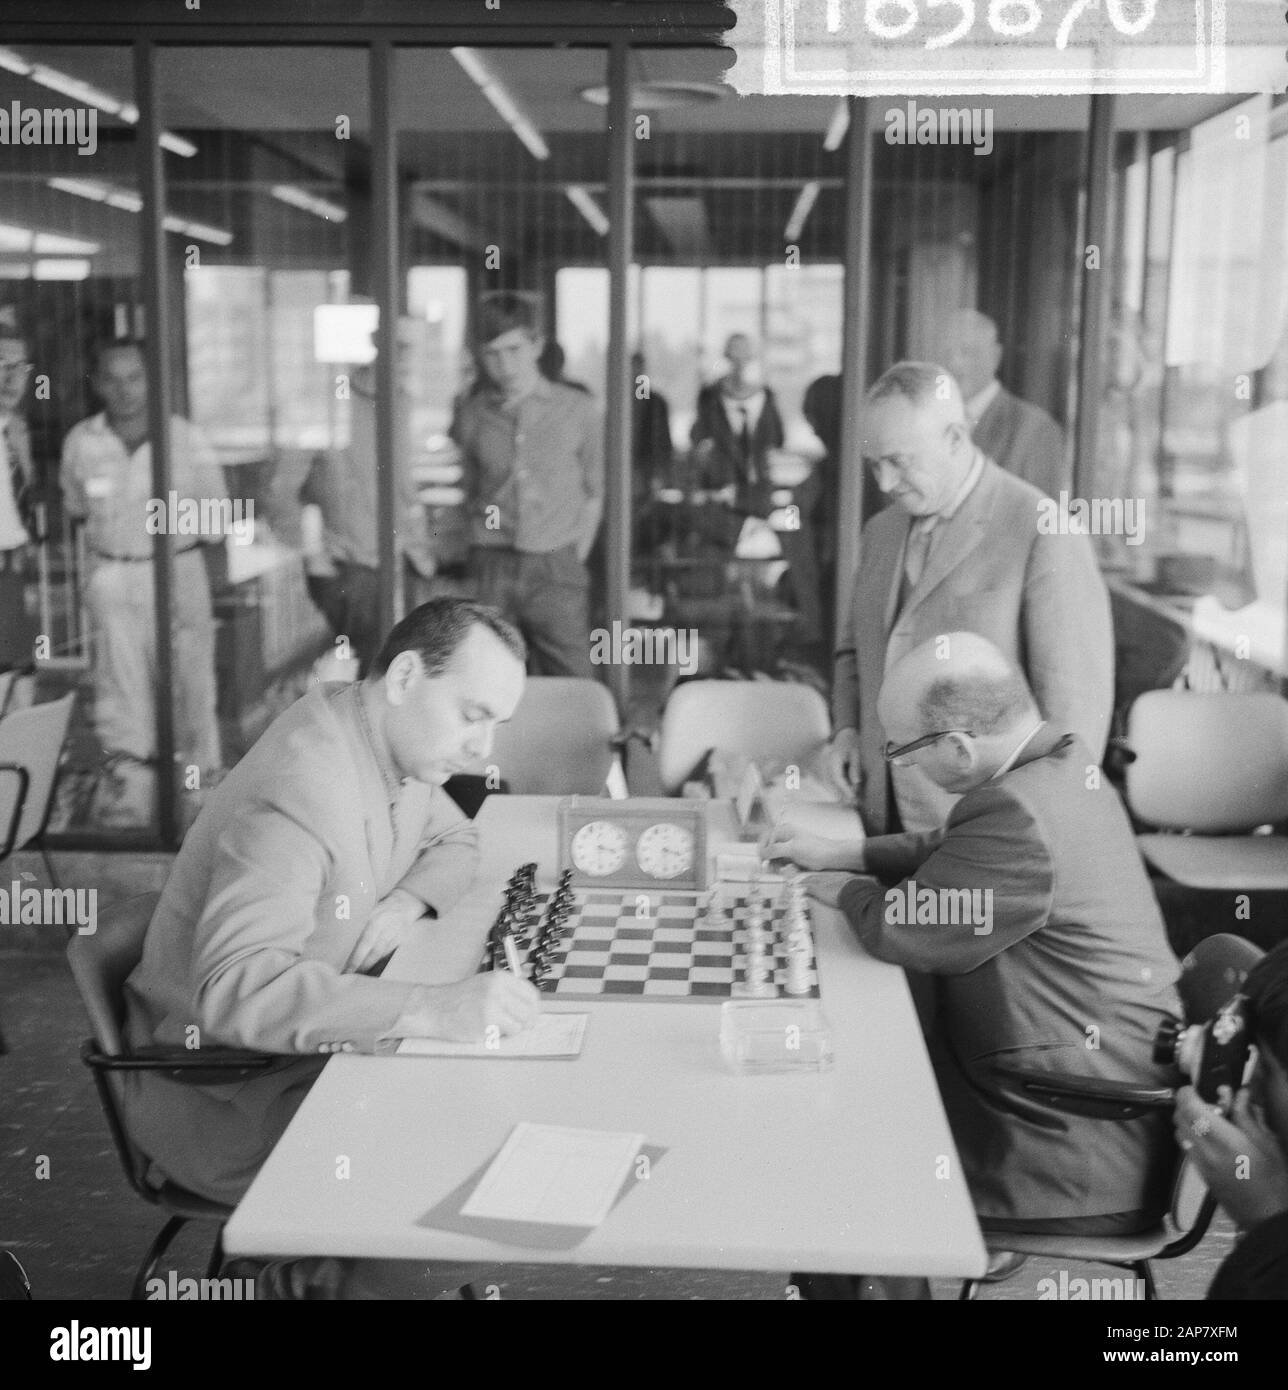 Decisioncompetition chess started in GAK, Portisch to Reshevsky Date: June 25, 1964 Keywords: CHESK Institution name: GAK Stock Photo